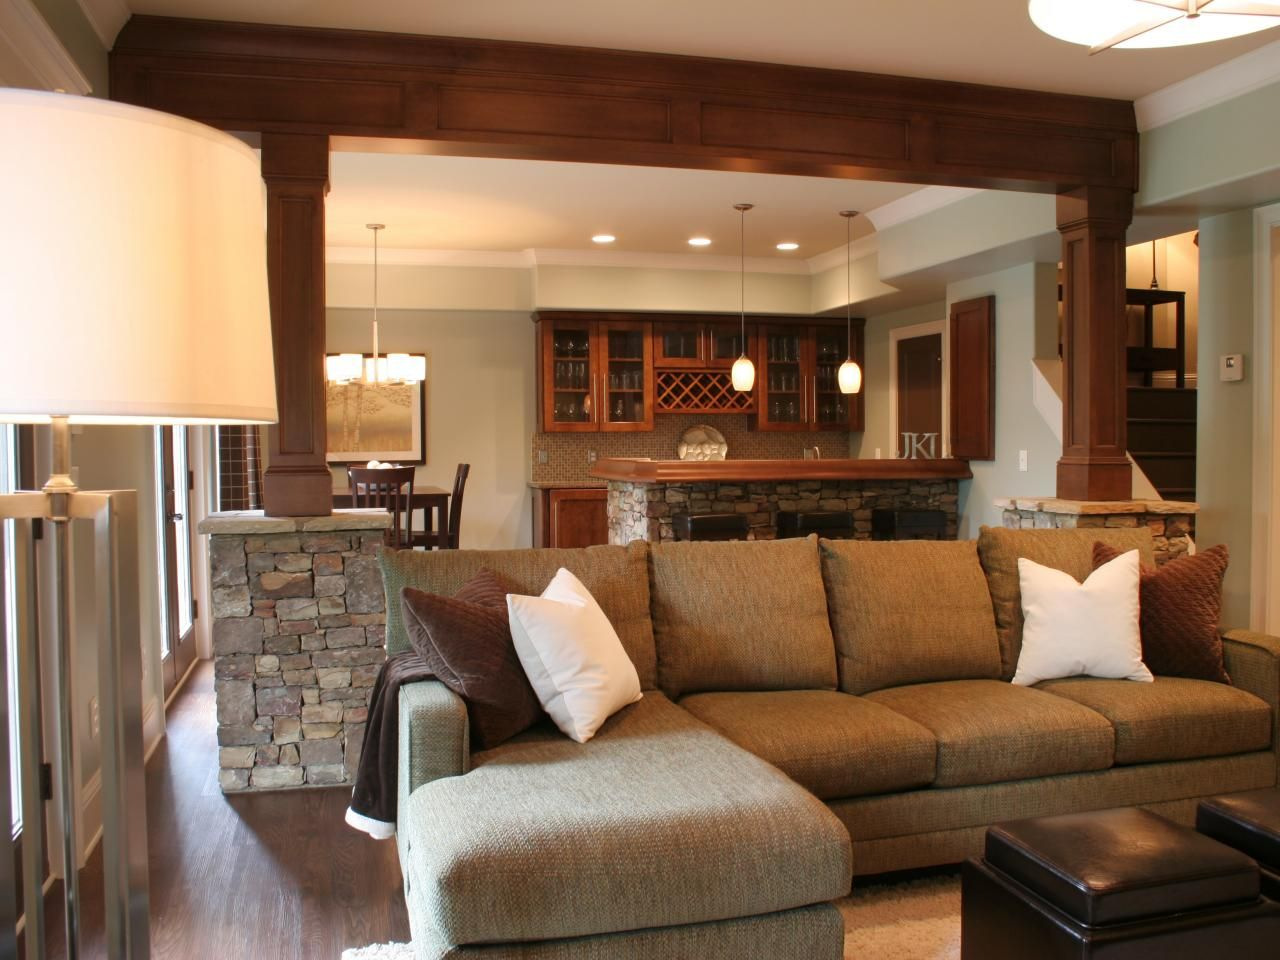 Basement design ideas basements hgtv and beams - Basement remodelling ideas ...